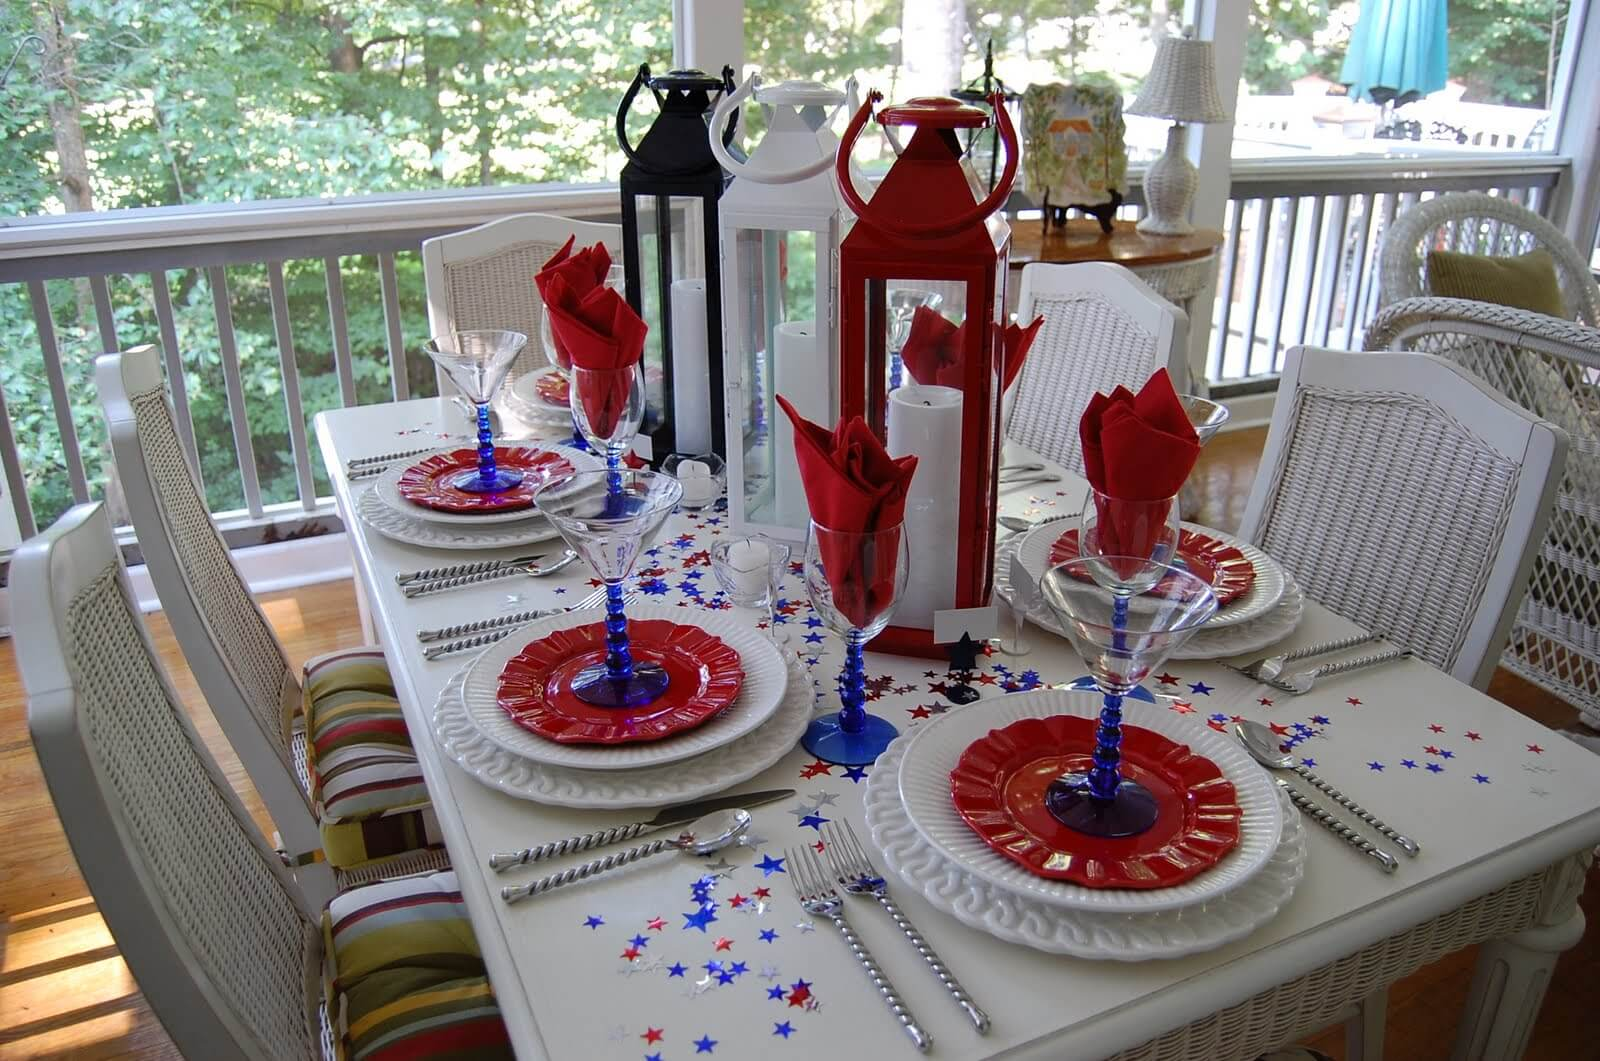 Deck Design Tips: Deck Out Your Outdoor Space for Independence Day | Wahoo Decks Aluminum Decking & Deck Railing 2